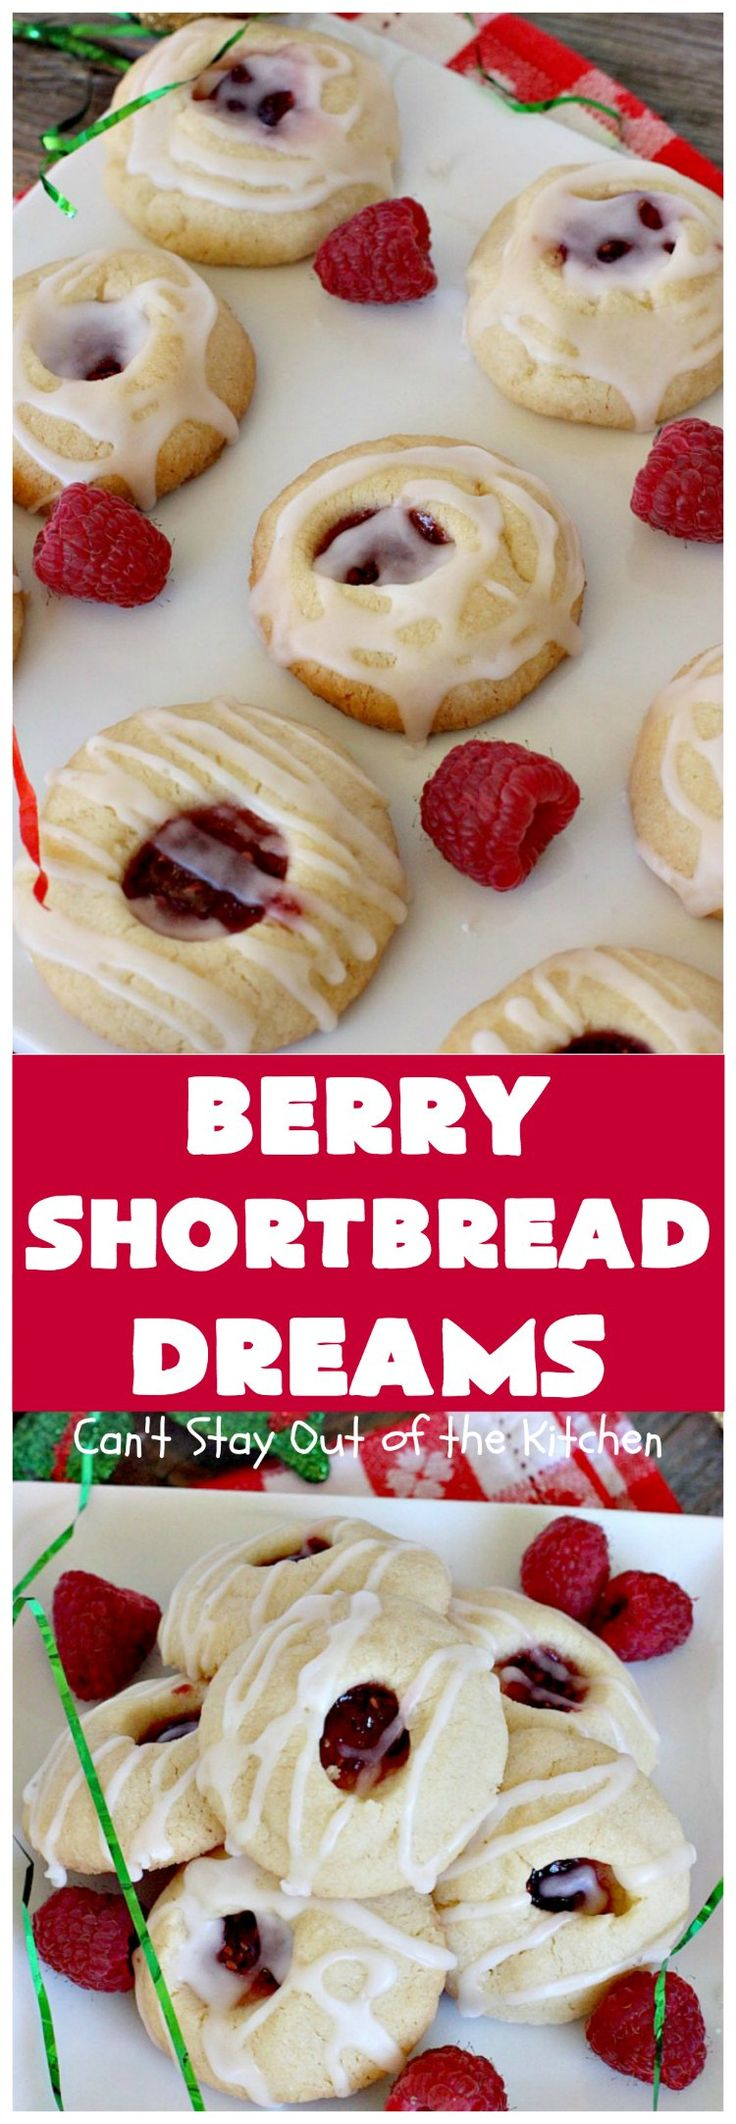 Berry Shortbread Dreams | Can't Stay Out of the Kitchen | these dreamy #cookies are filled with #raspberry preserves and have an #almond shortbread base as well as almond icing. They are terrific for #holiday parties. #dessert